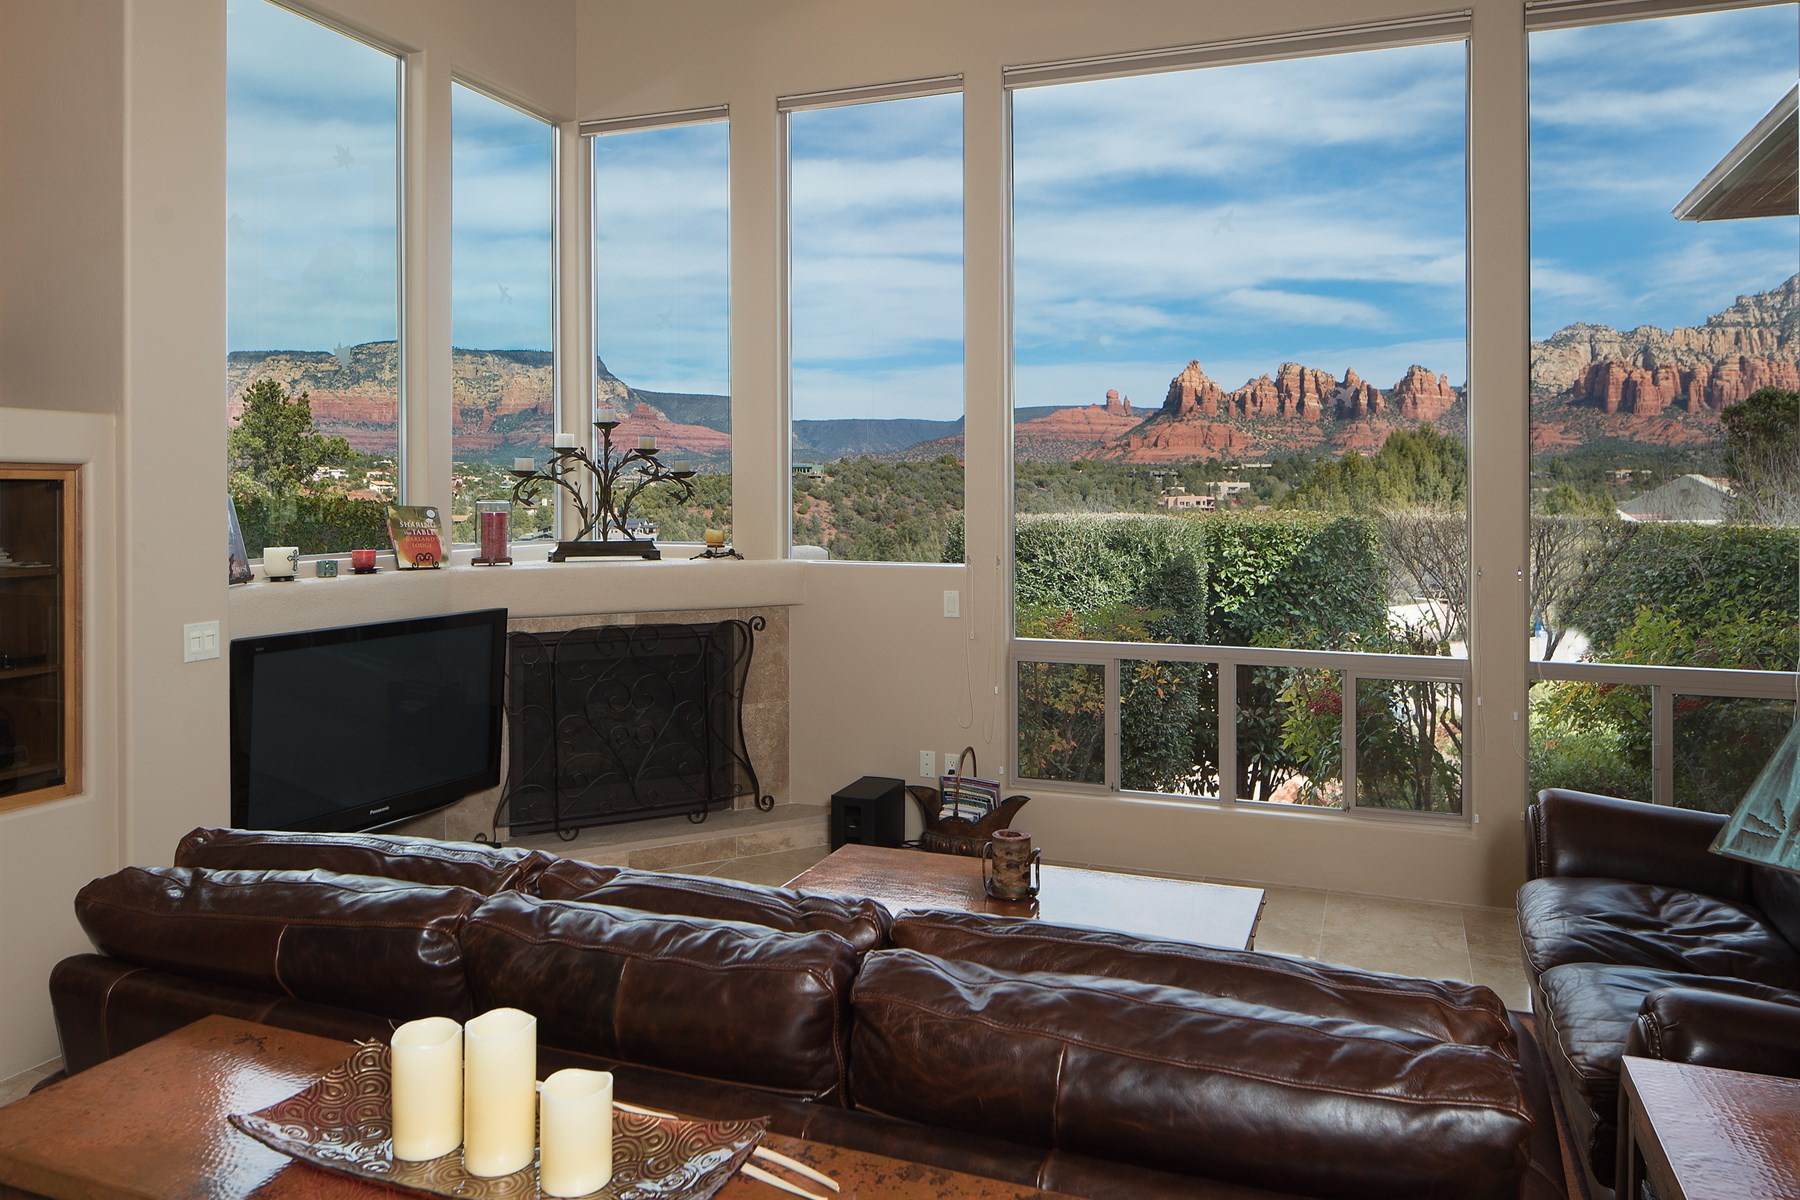 Single Family Home for Sale at Immaculate Sedona home perched on a hilltop with tremendous red rock views 112 Caballo Sedona, Arizona, 86336 United States